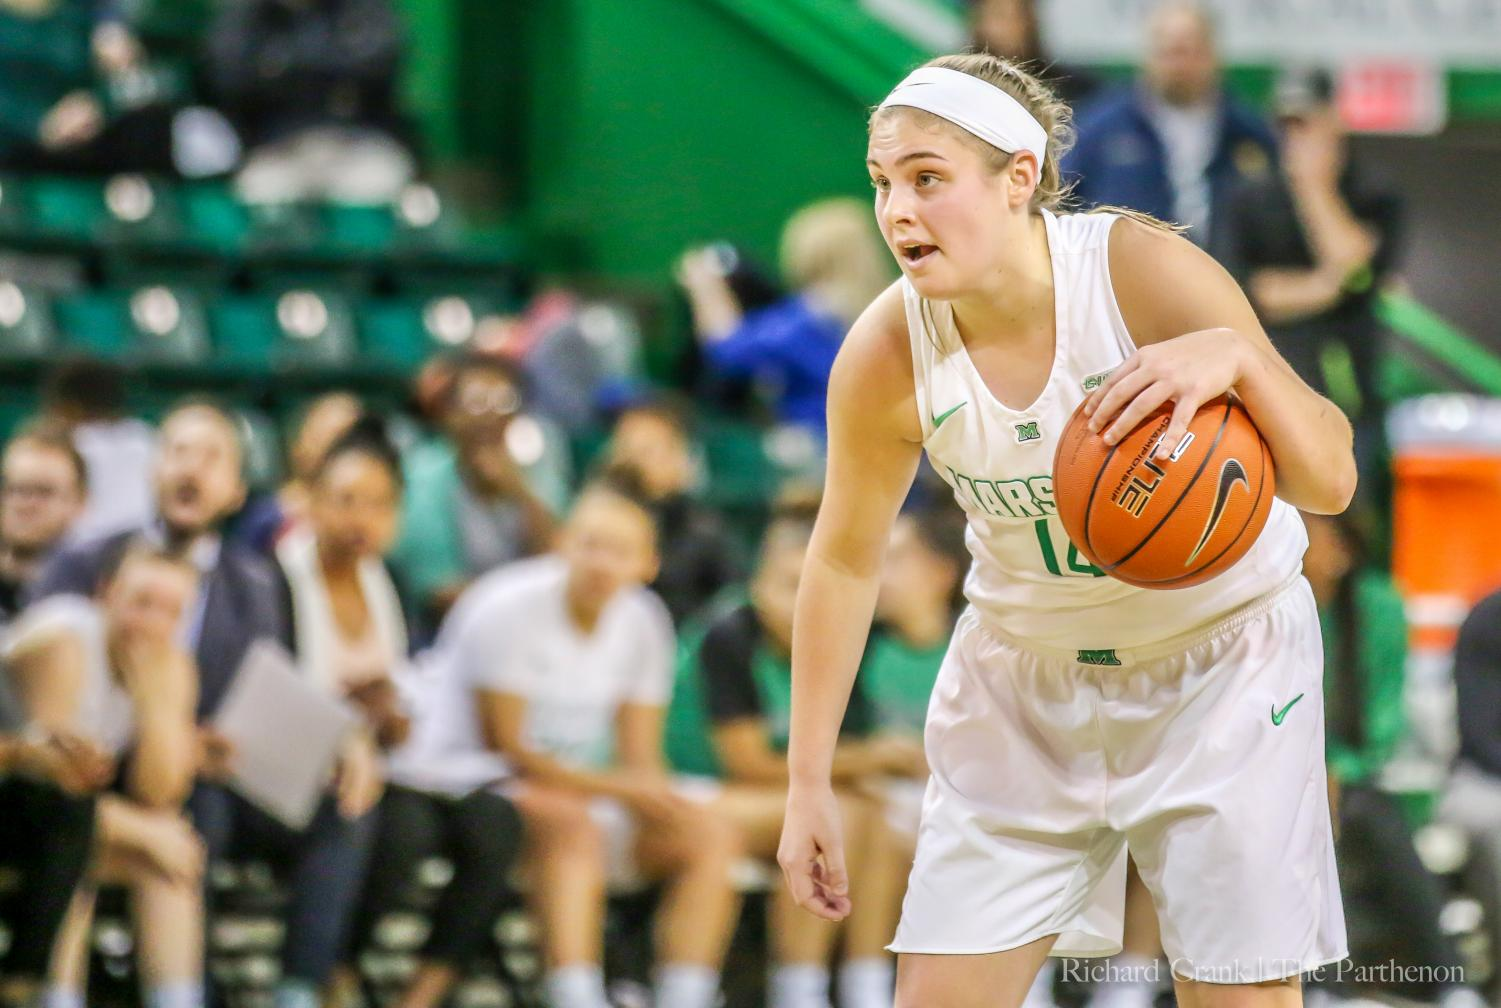 Marshall guard Shayna Gore (14) prepares to run a play during a Conference USA game against Louisiana Tech at the Cam Henderson Center.